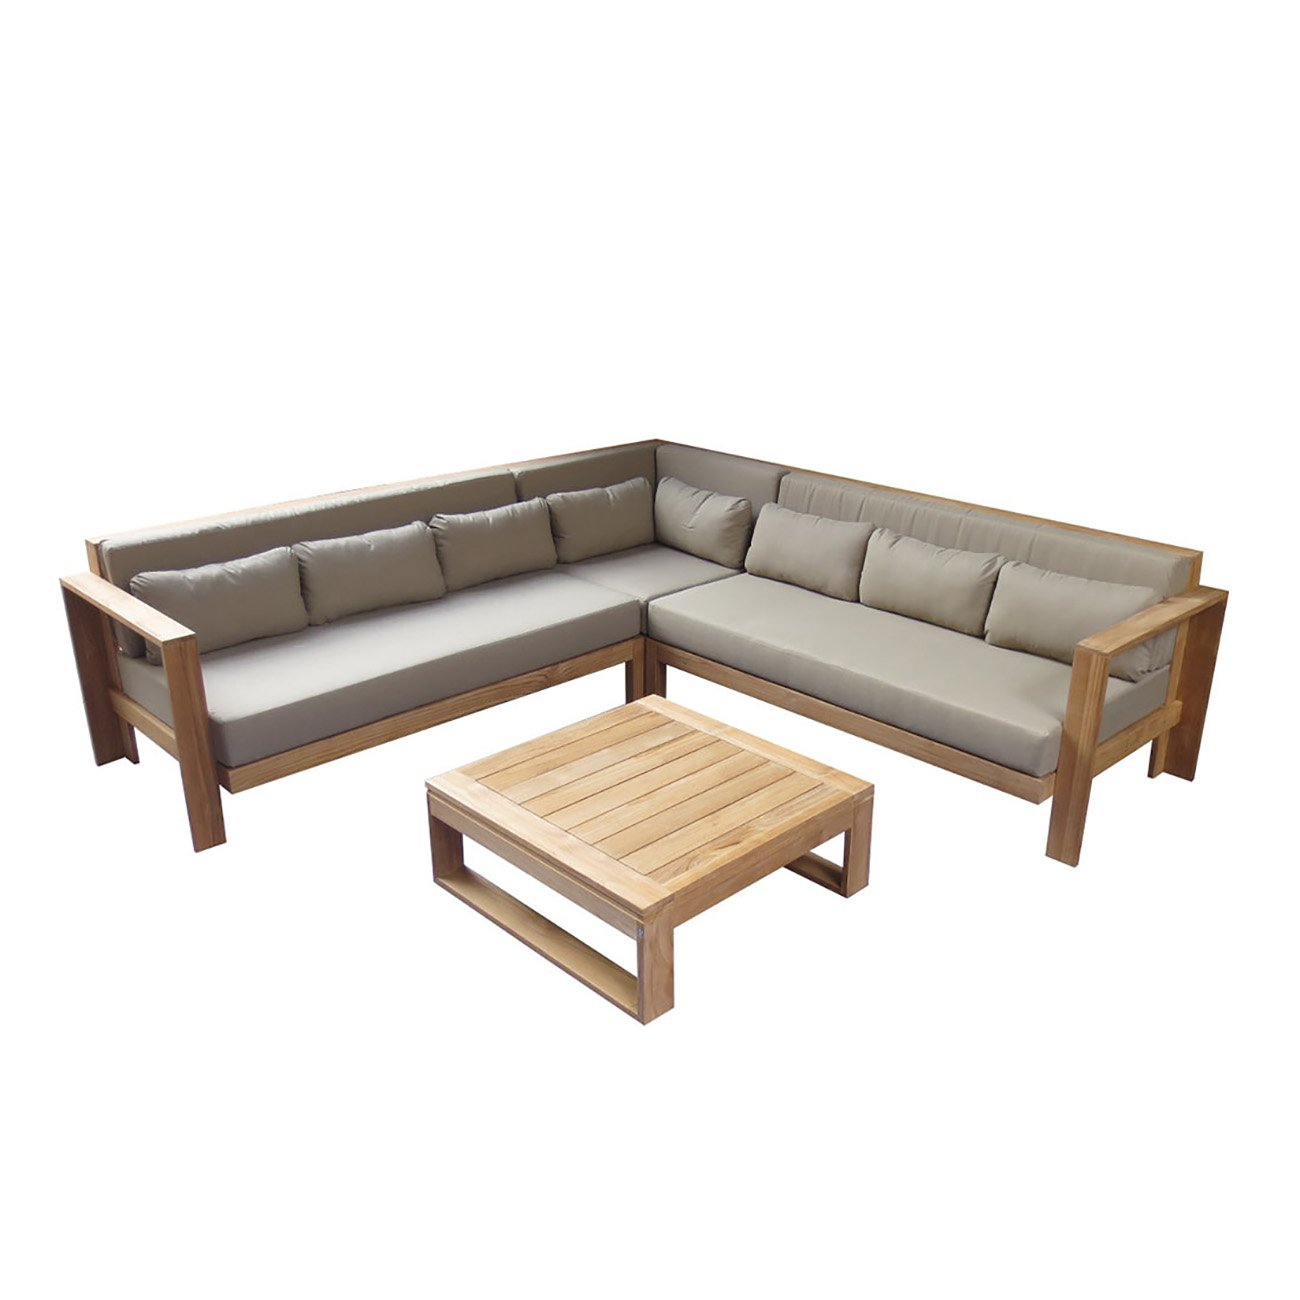 gartenlounge outliv triest 3 tlg gartenm bel teakholz outdoor loungem bel lounge set g nstig kaufen. Black Bedroom Furniture Sets. Home Design Ideas